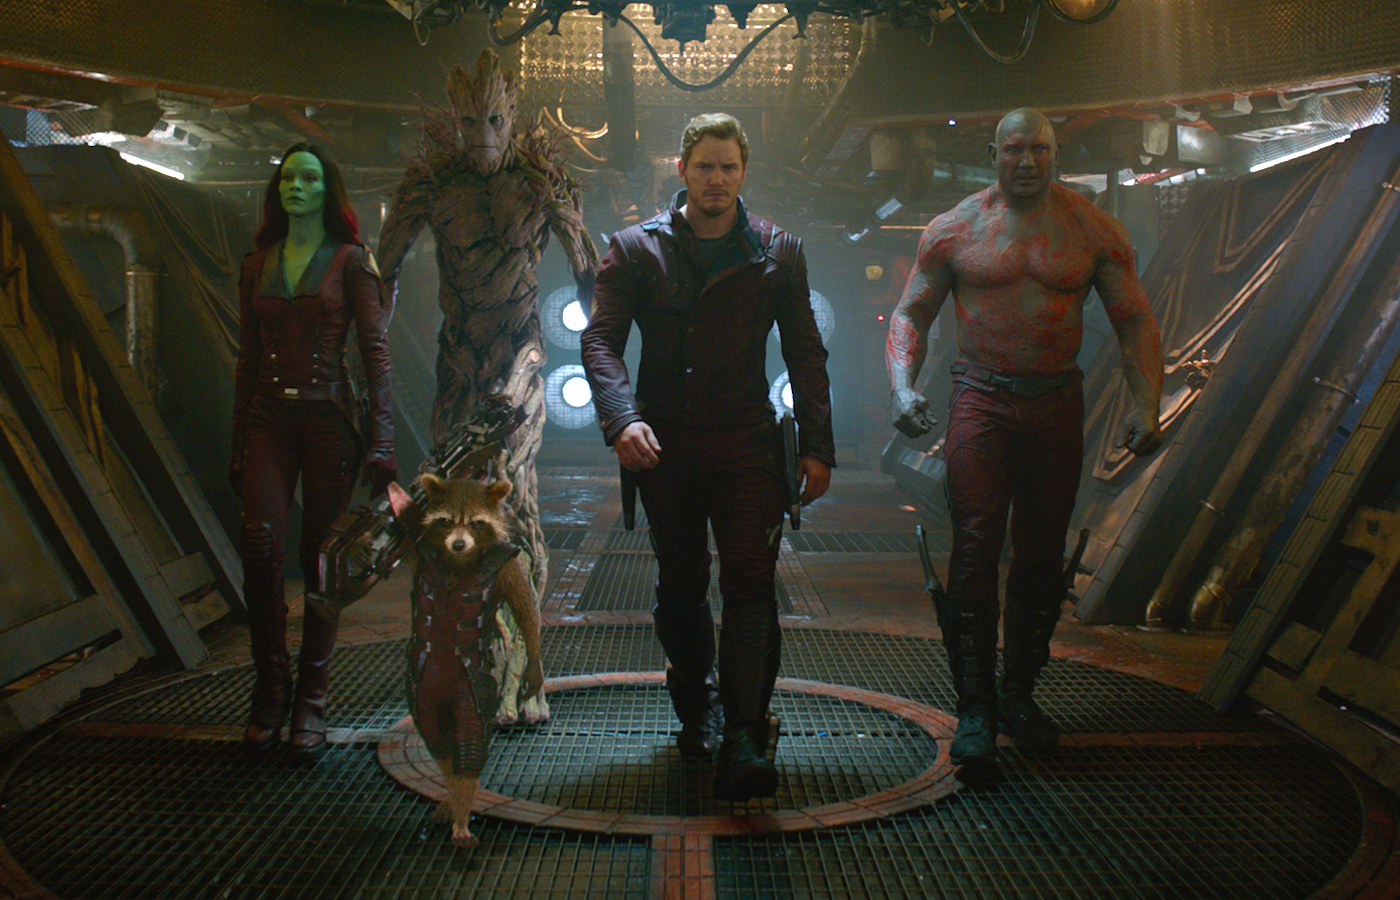 guardians-of-the-galaxy-image1.jpg